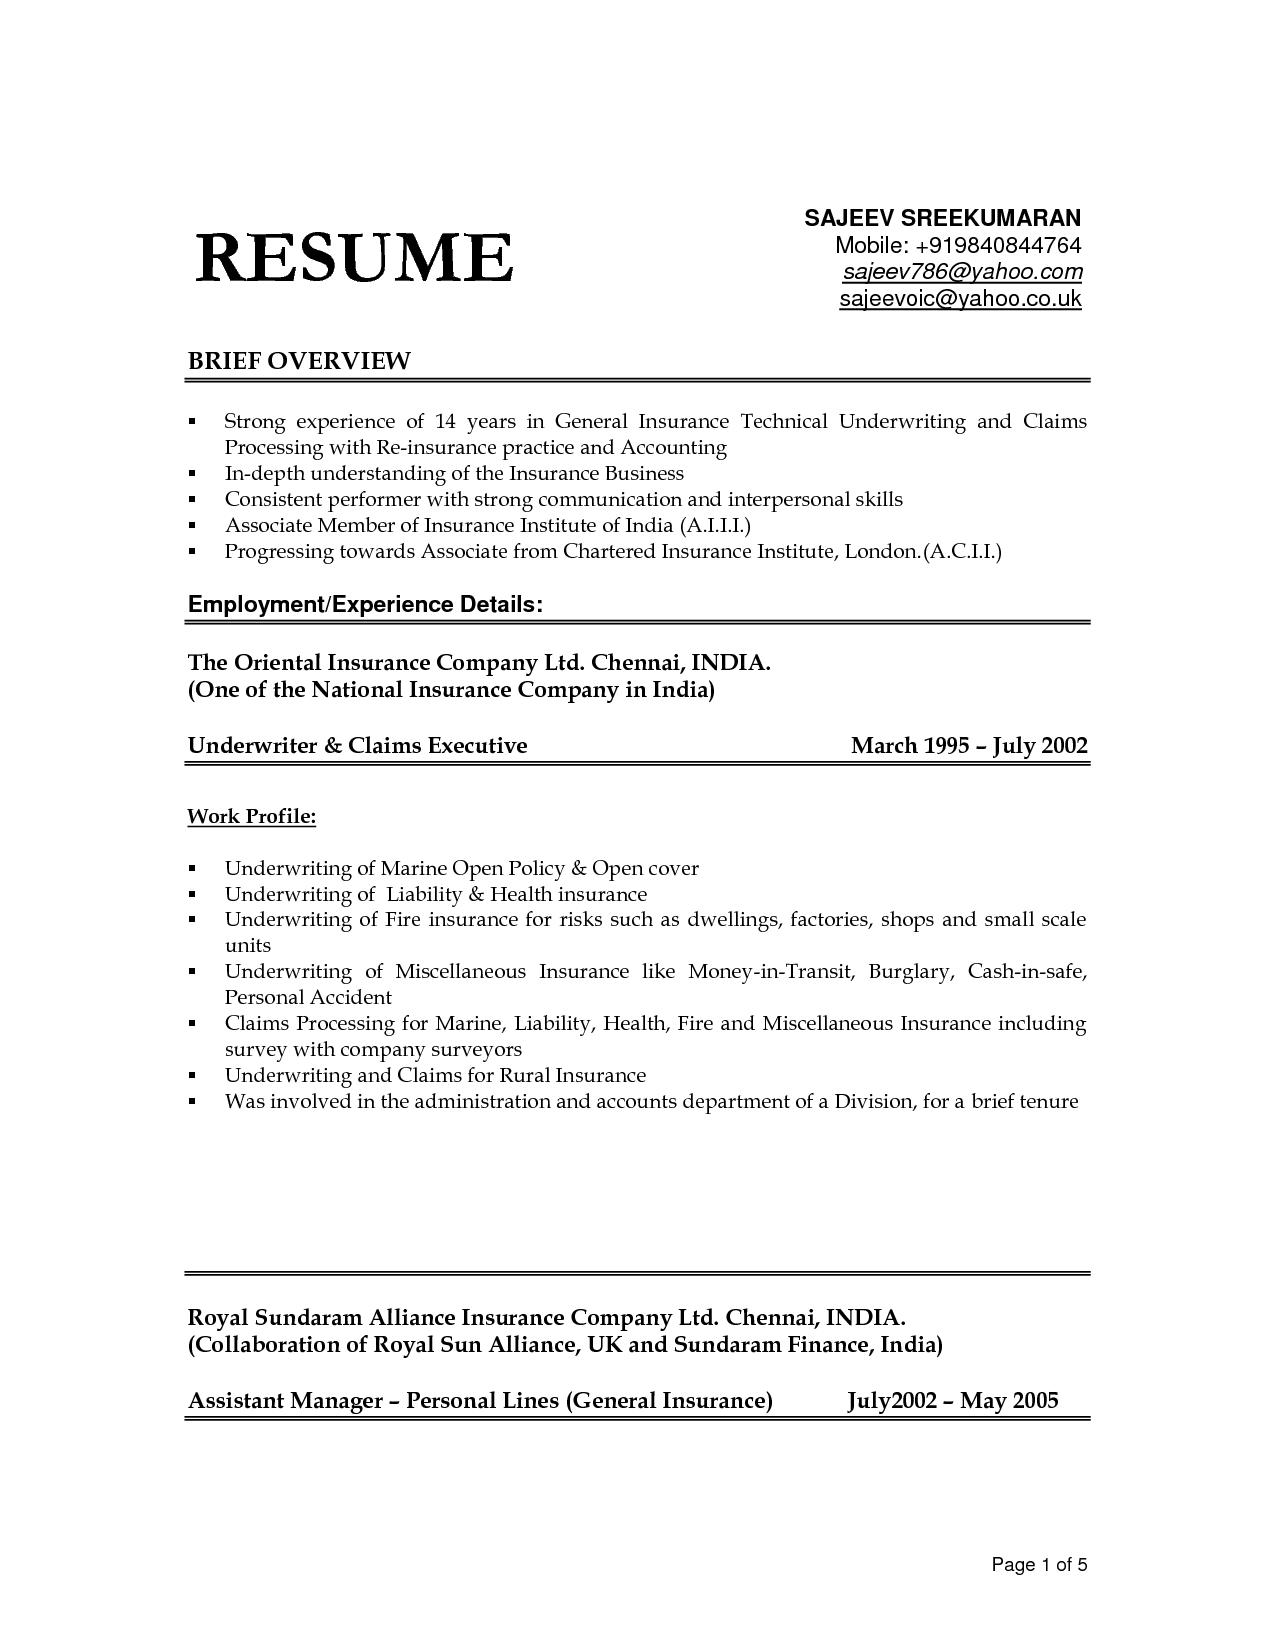 36 New Helper Resume Sample with Images